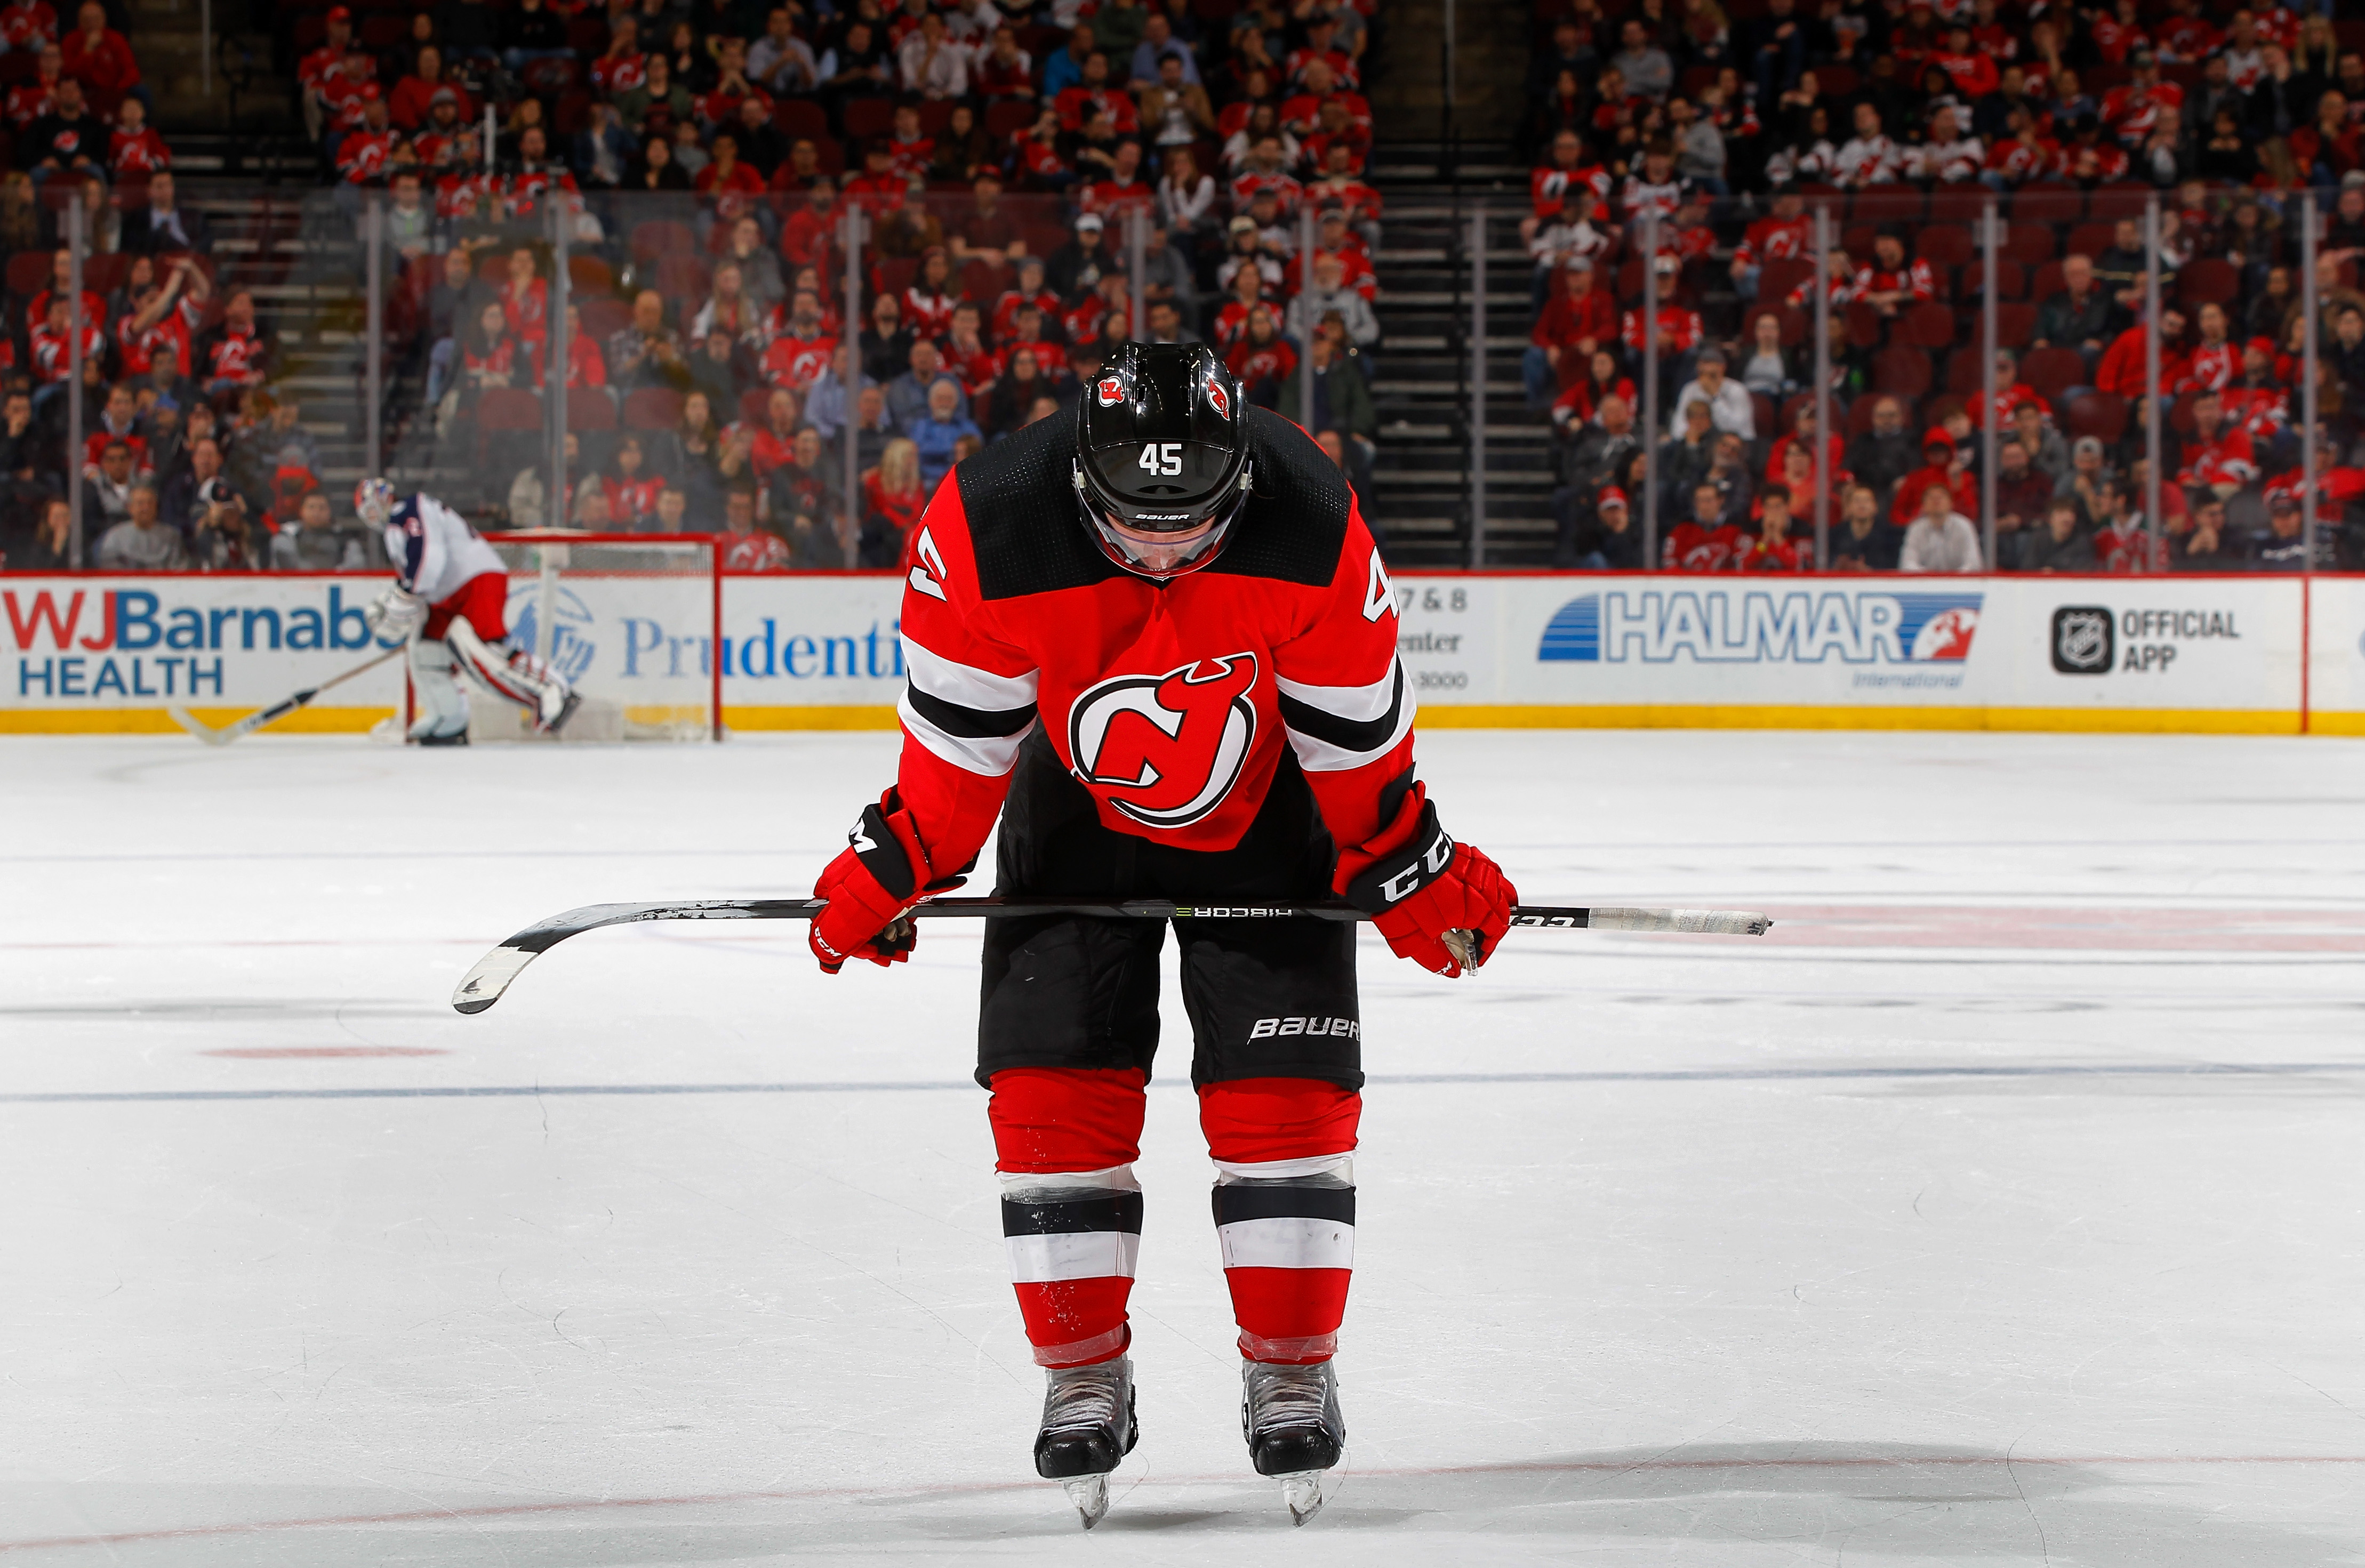 a301bc8e7 ... home nhl jersey eae57 3519b e902e  uk new jersey devils win streak  snapped in close loss to columbus blue jackets c5d4d 8f59d